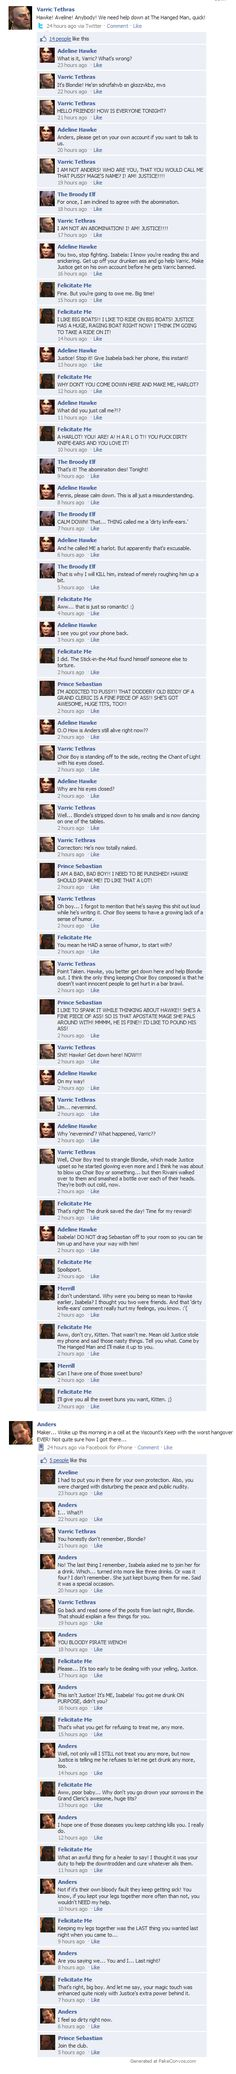 If the DA 2 crew had facebook. Even though I hate facebook for this reason, somehow seeing it with Dragon Age characters made this quite enjoyable.